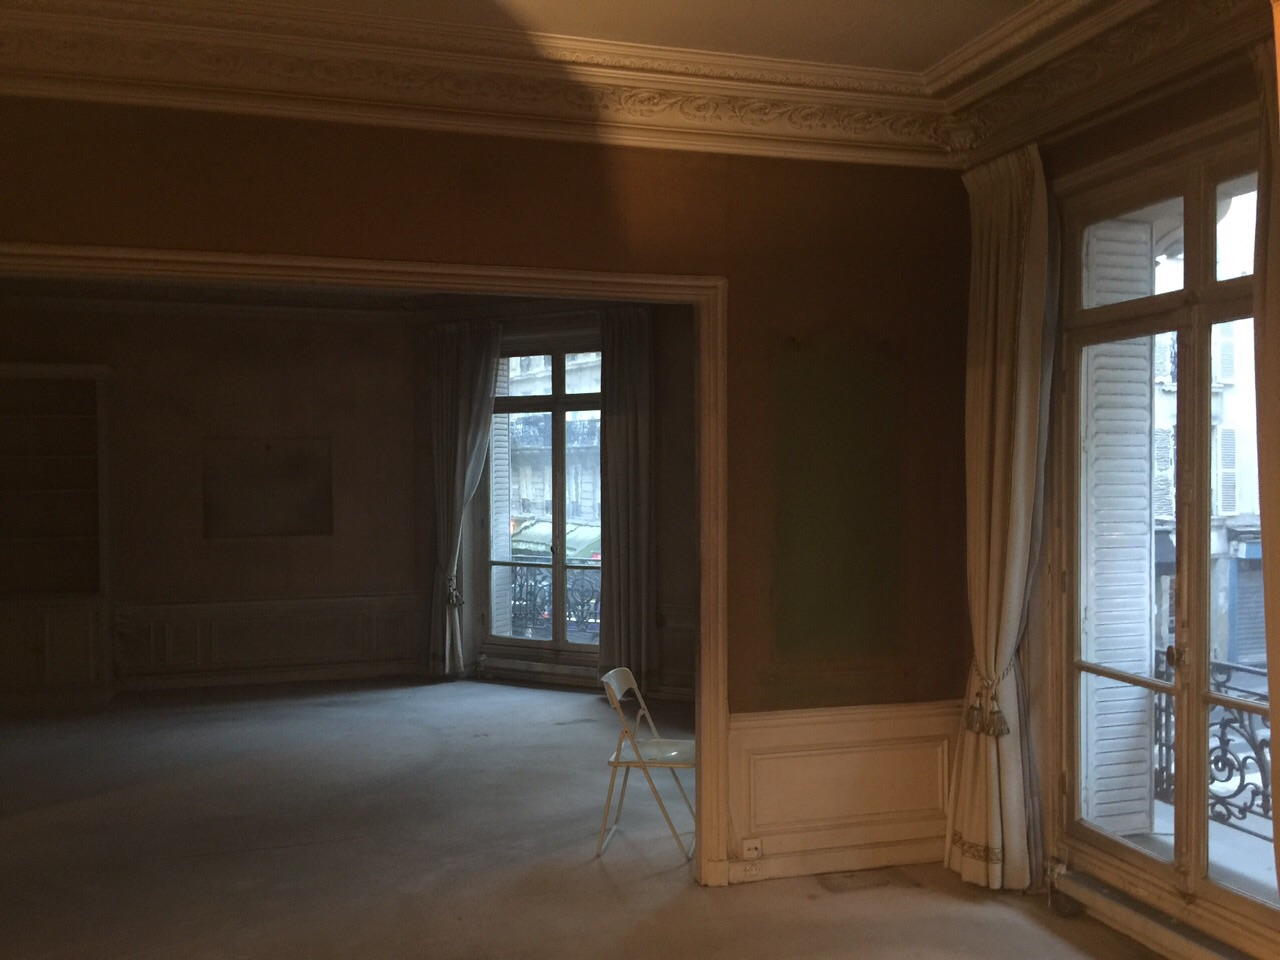 Coralie aubert appartement haussmannien 140m une for Renovation salon salle a manger